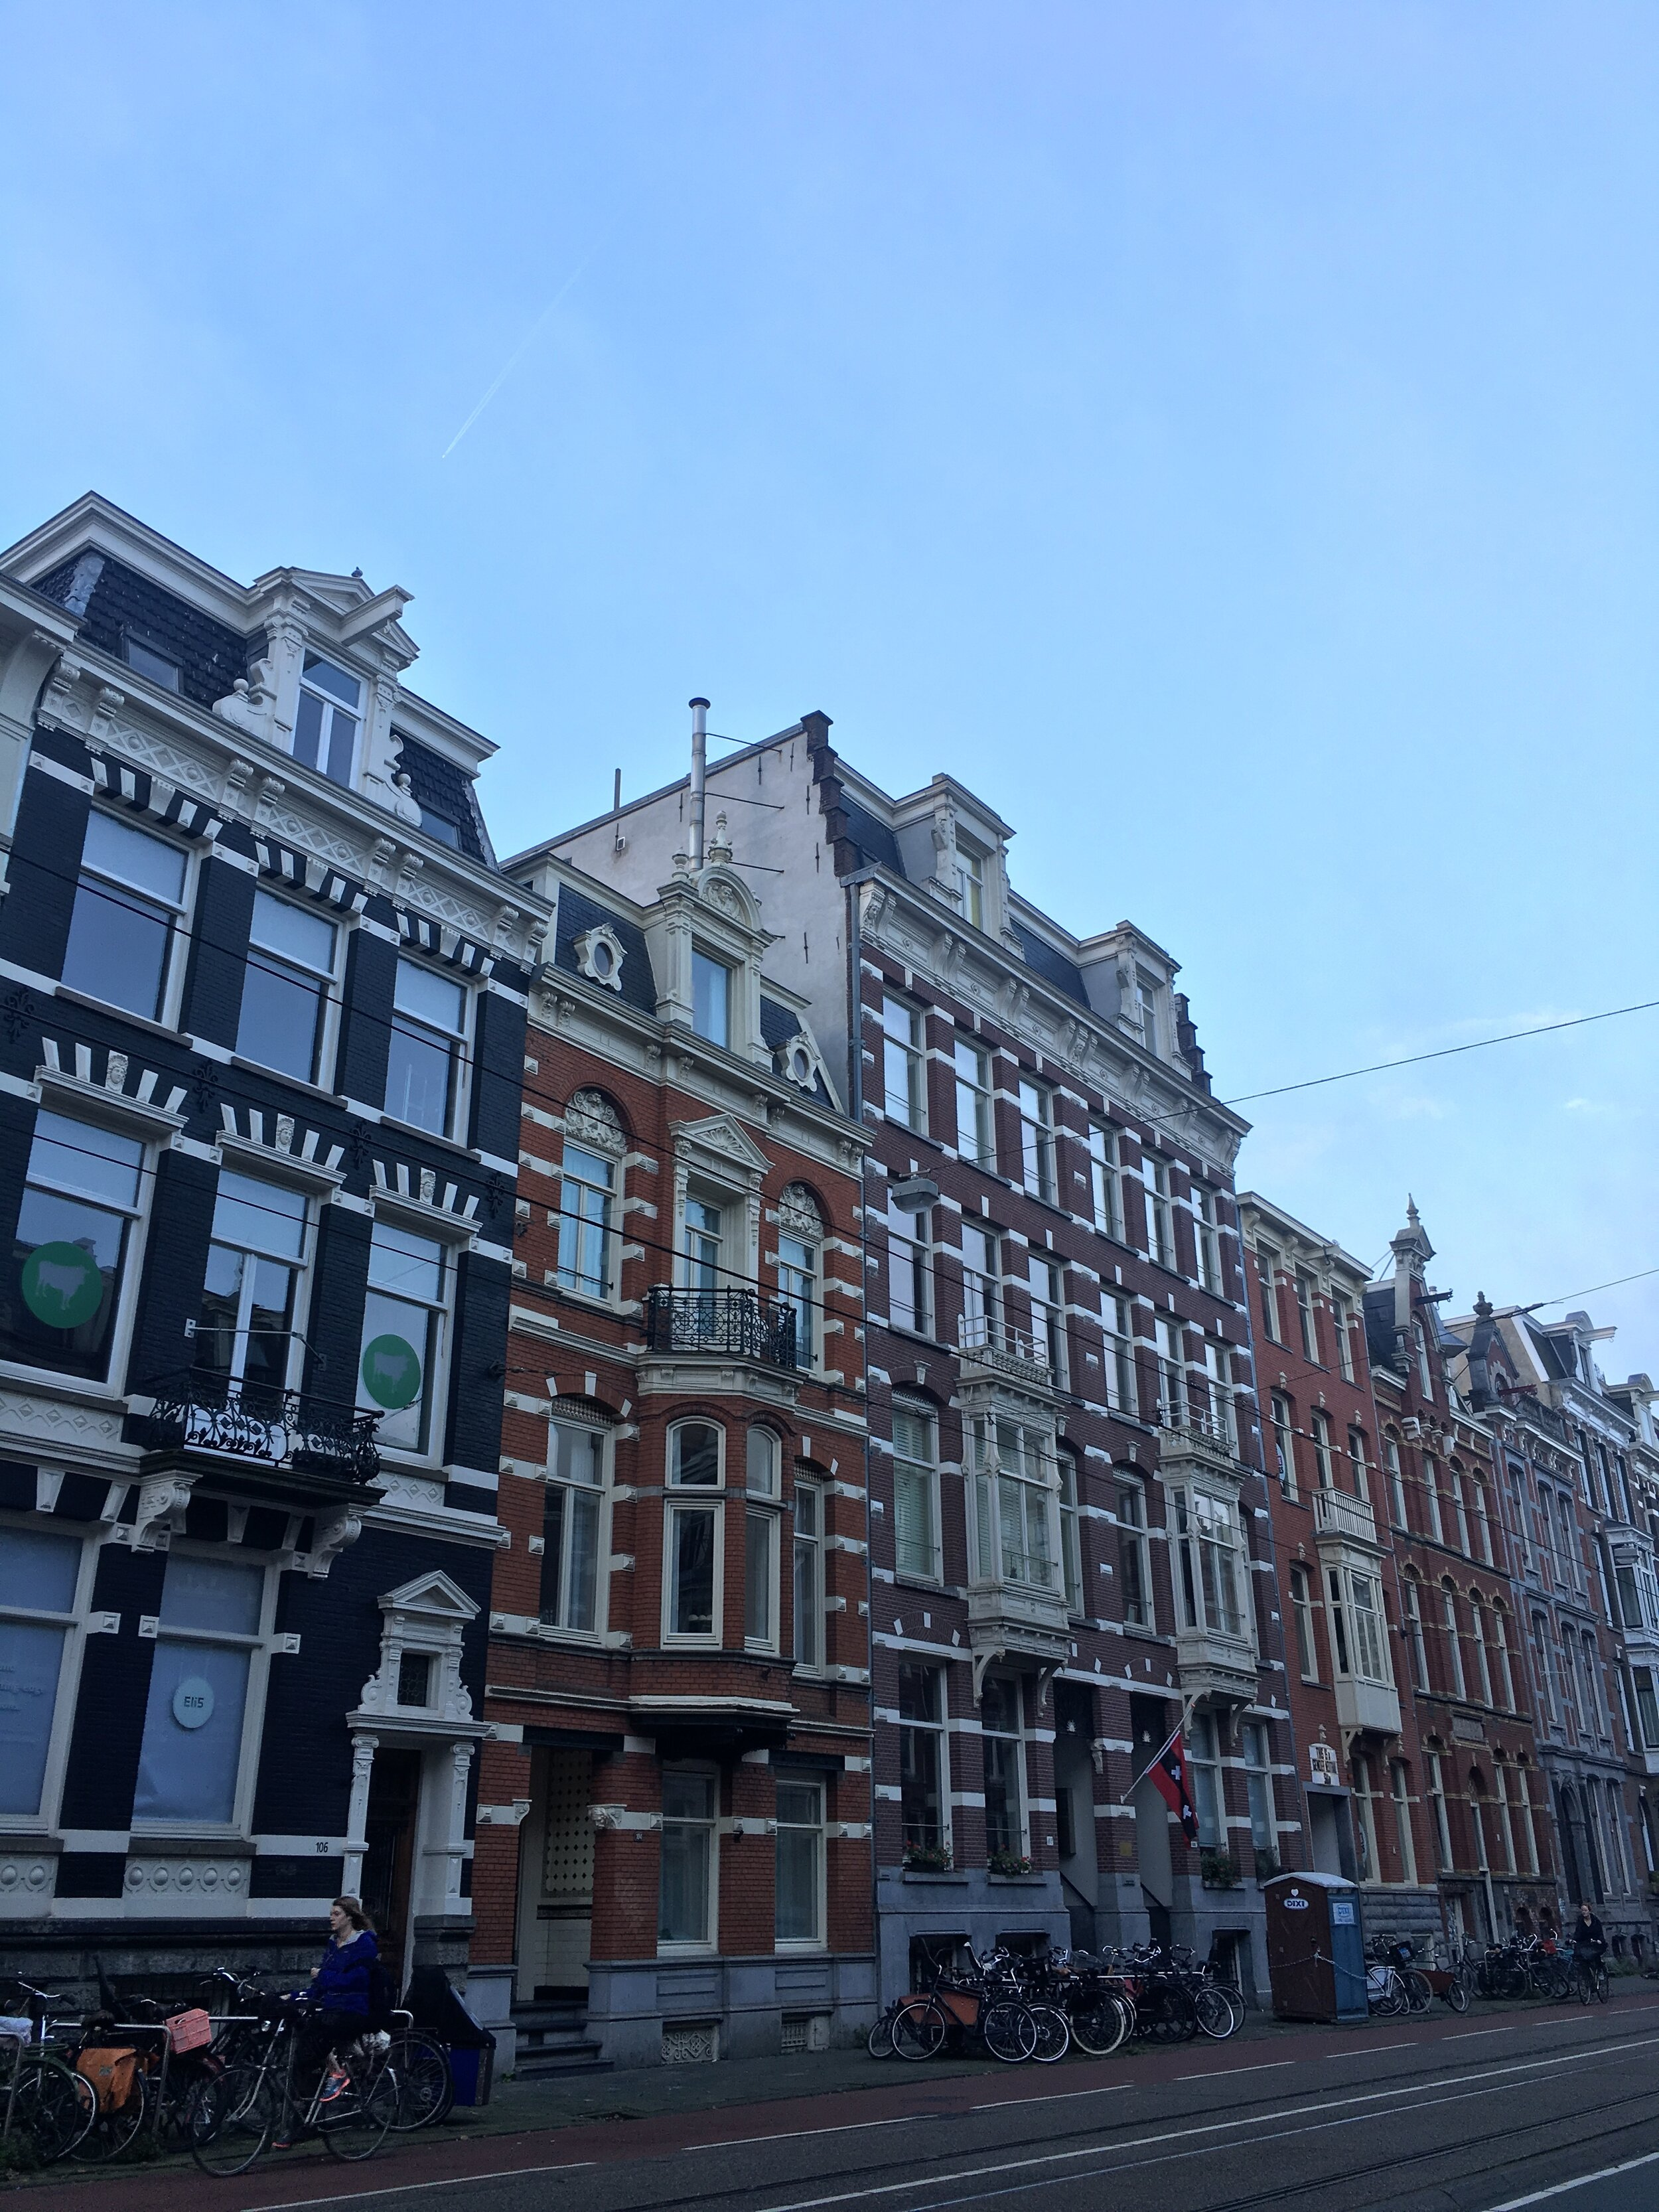 Amsterdam has some of the prettiest buildings